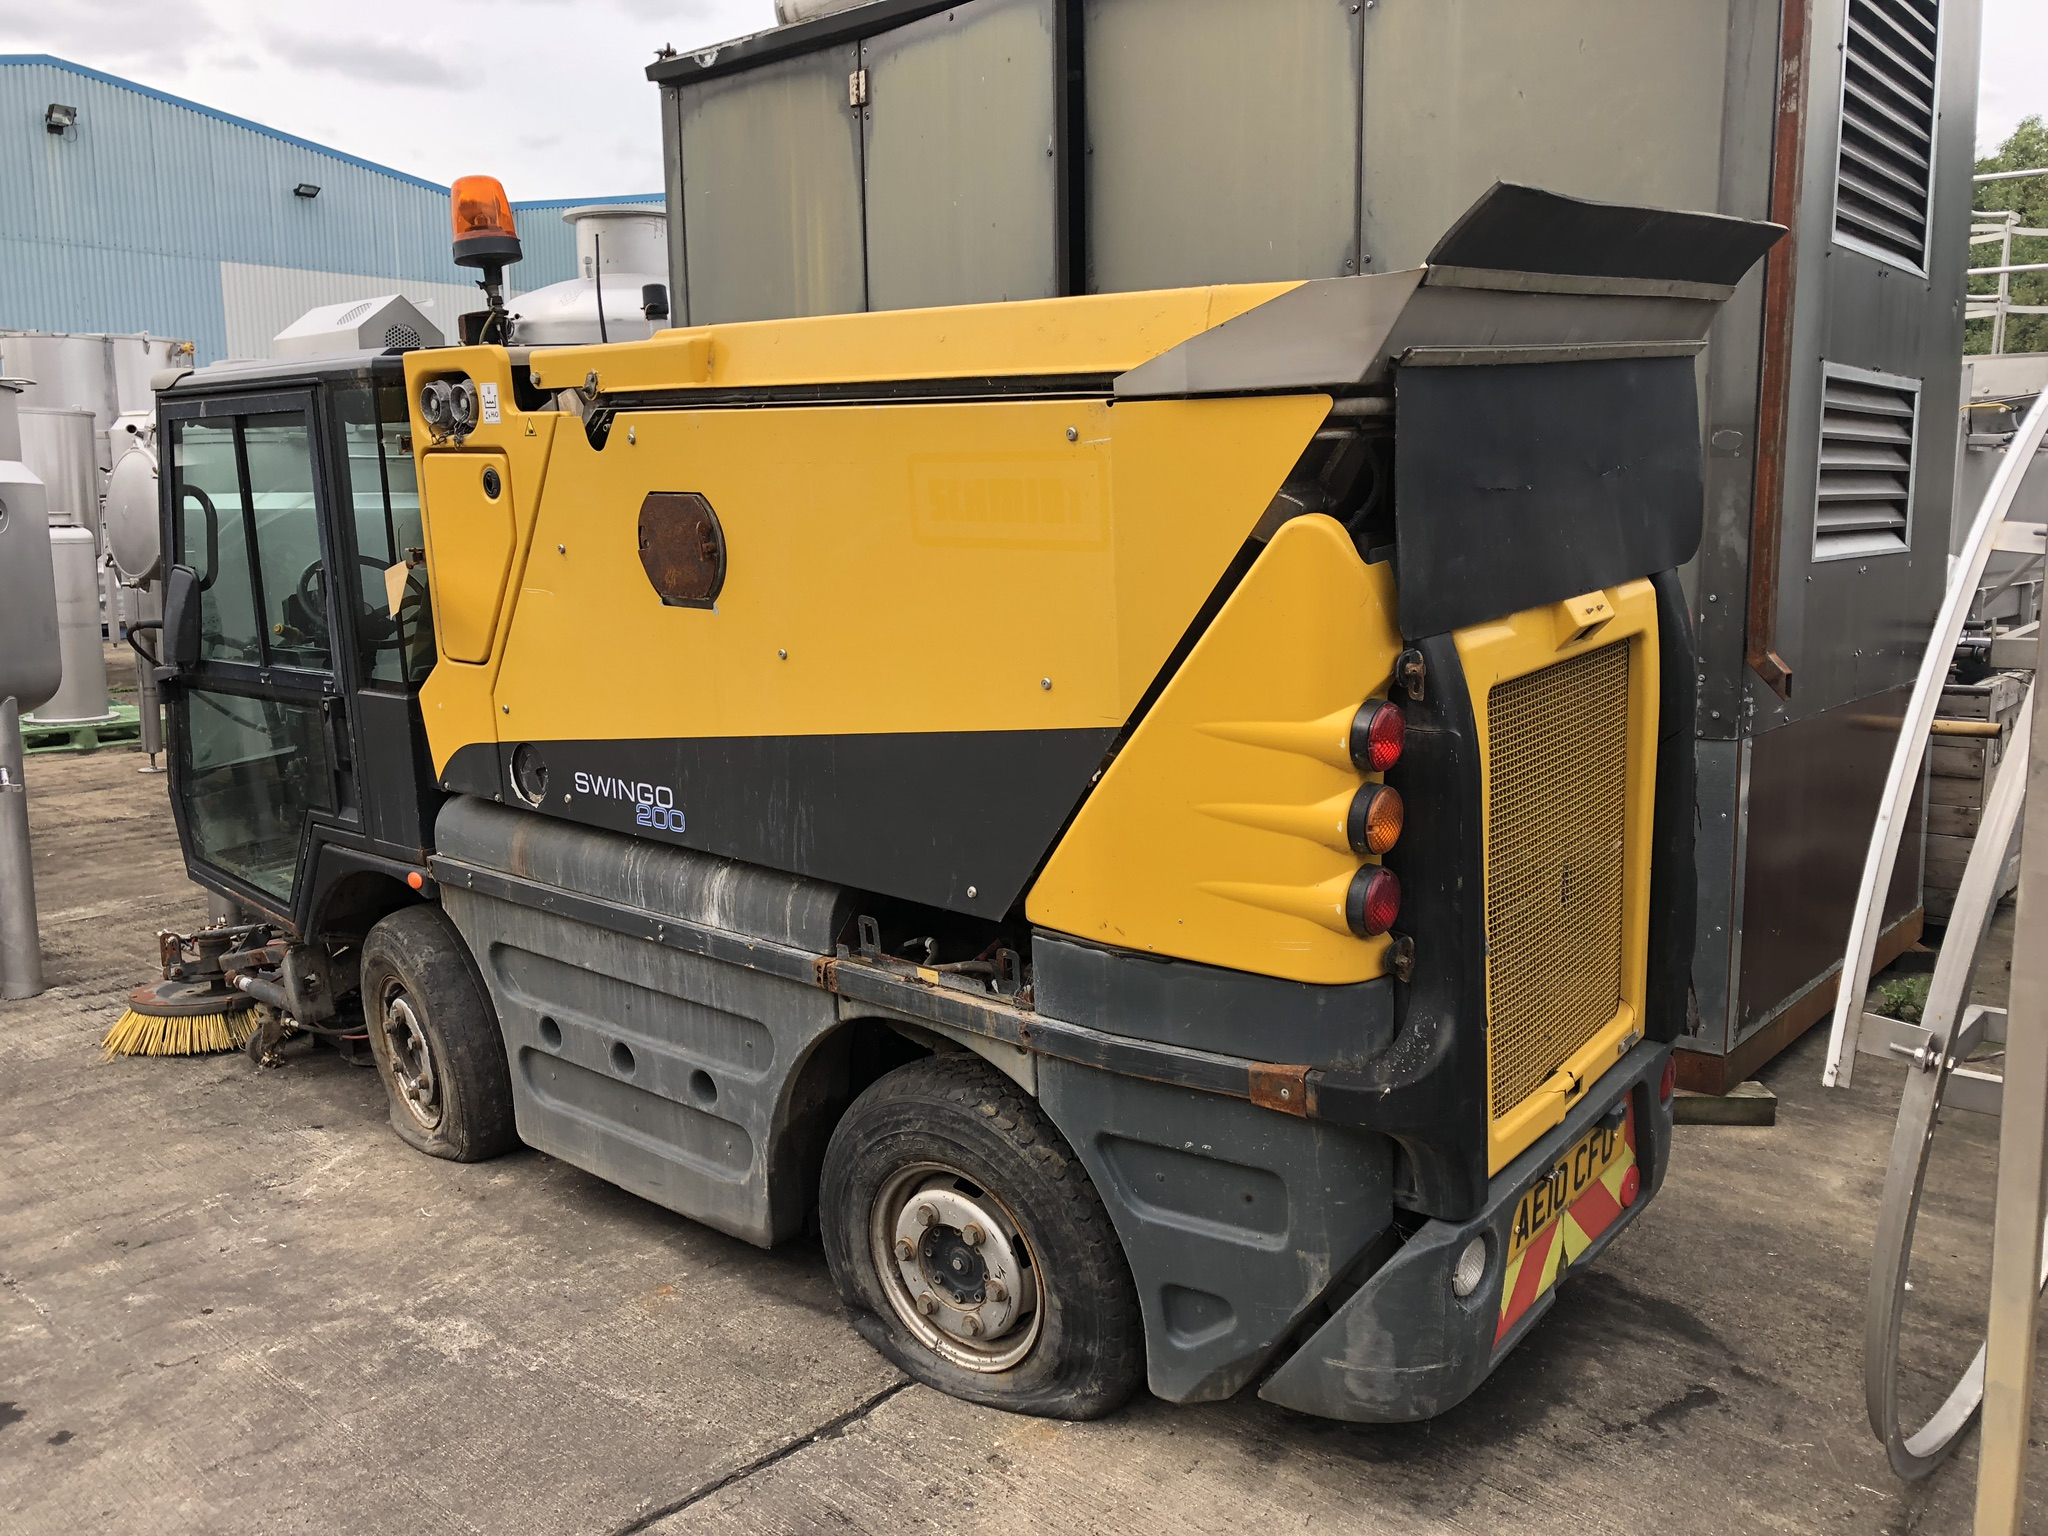 Schmidt Swingo 200 Road Sweeper, registration no. AE10 CFO (understood to require attention - non- - Image 2 of 3